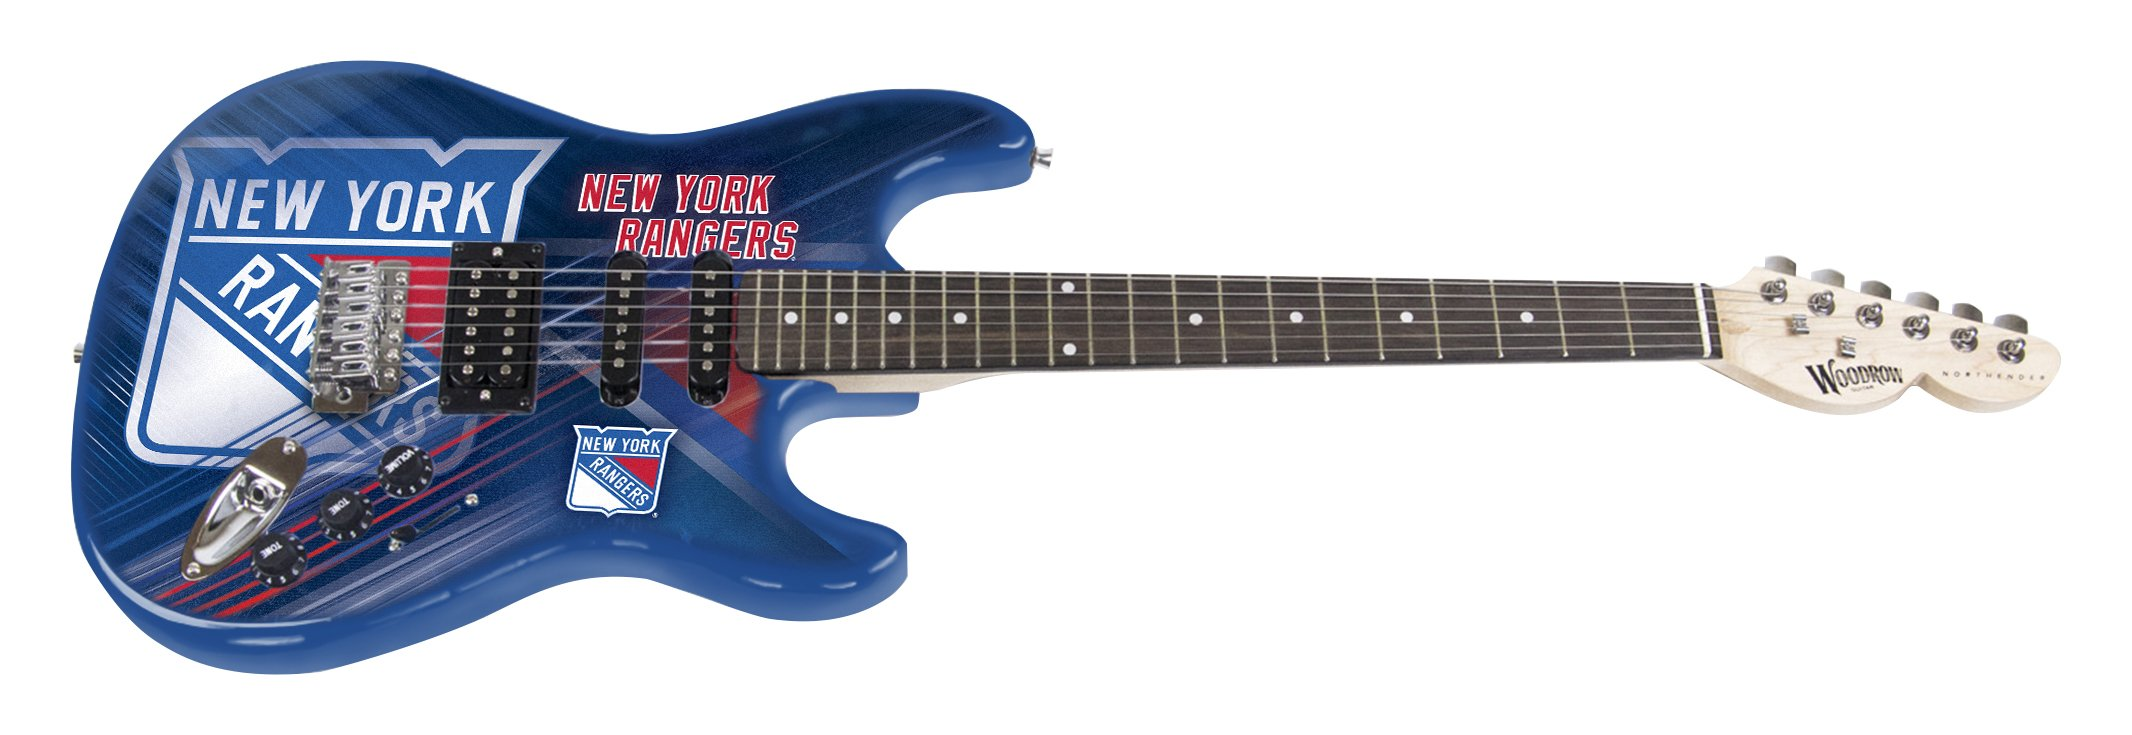 Cheap Woodrow Guitar by The Sports Vault NHL New York Rangers Northender Electric Guitar Black Friday & Cyber Monday 2019